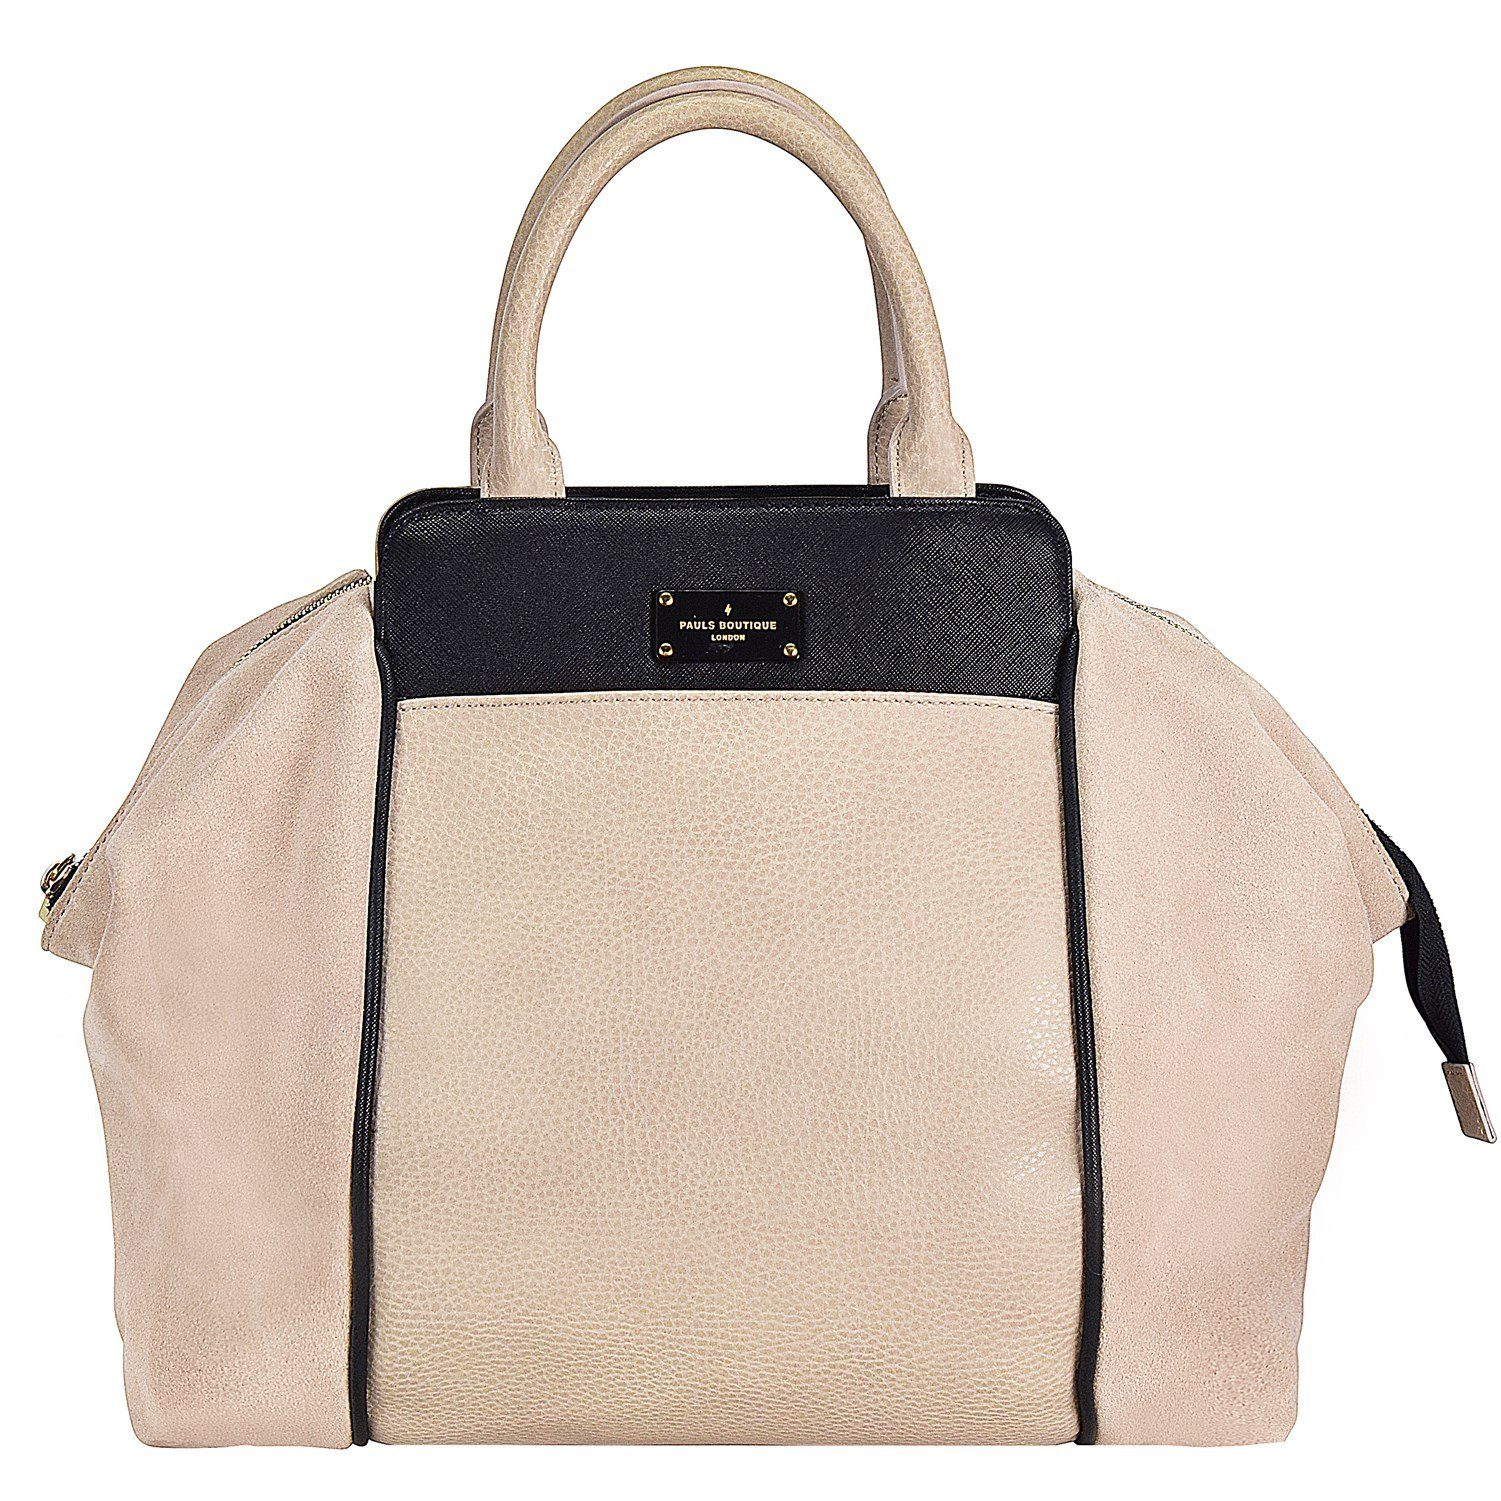 Paul's Boutique Camila Shopper Tasche 33 cm